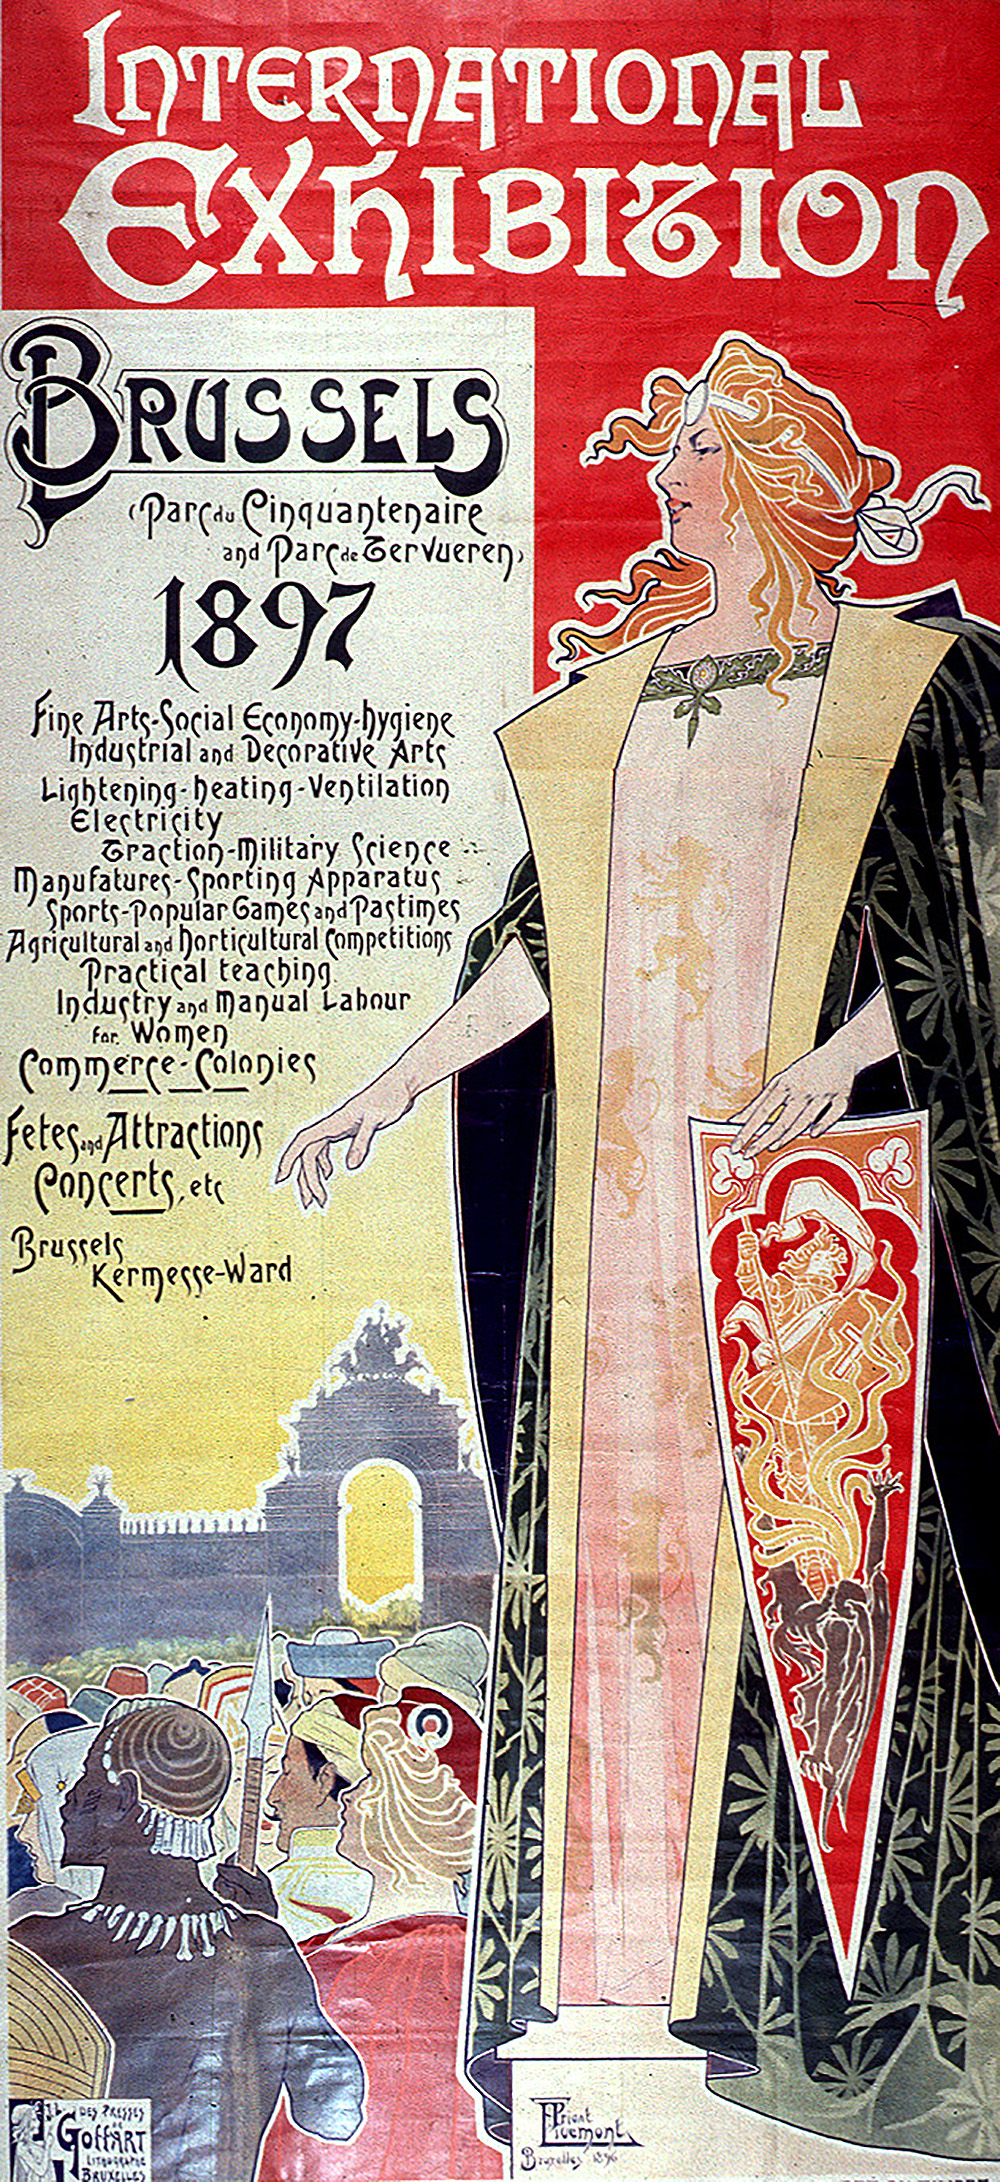 Poster from the 1897 Colonial Exposition in Brussels by Henri Privat-Livemont.